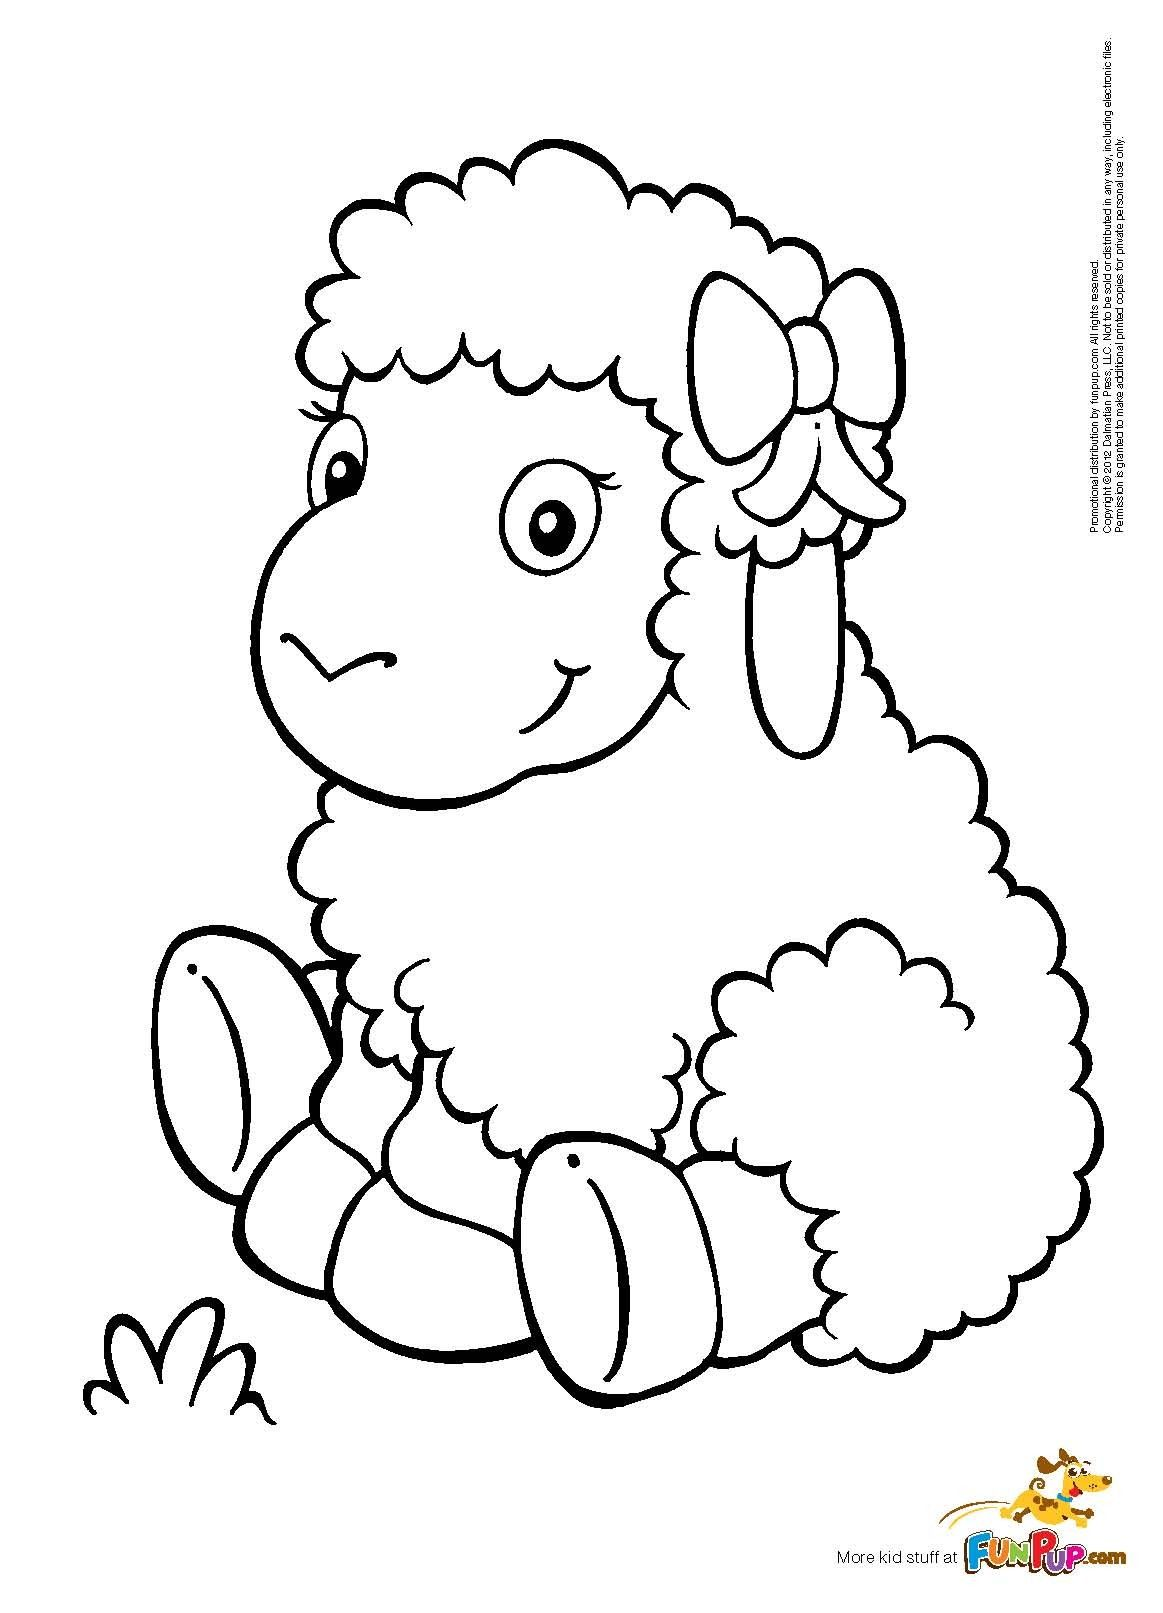 1000 images about free printable coloring pages on pinterest